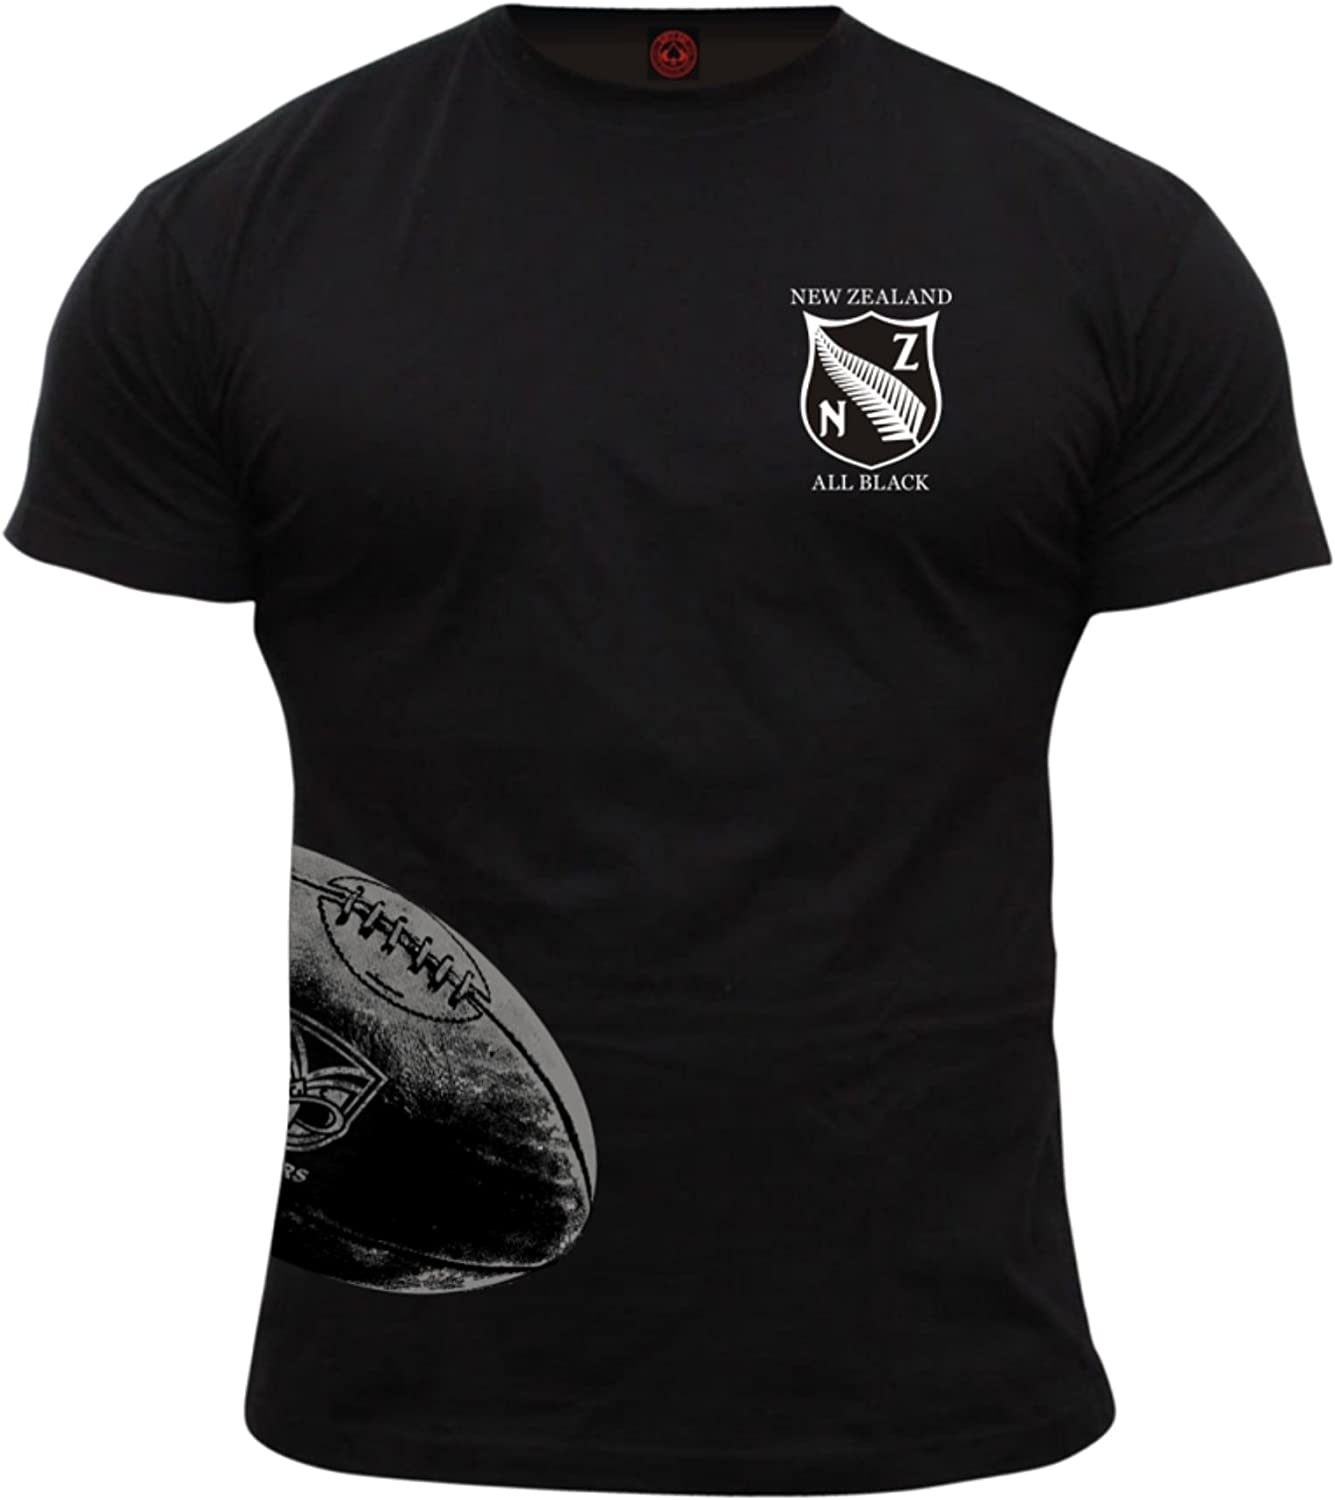 Dirty Ray Rugby New Zealand All Black Camiseta Hombre KRB3